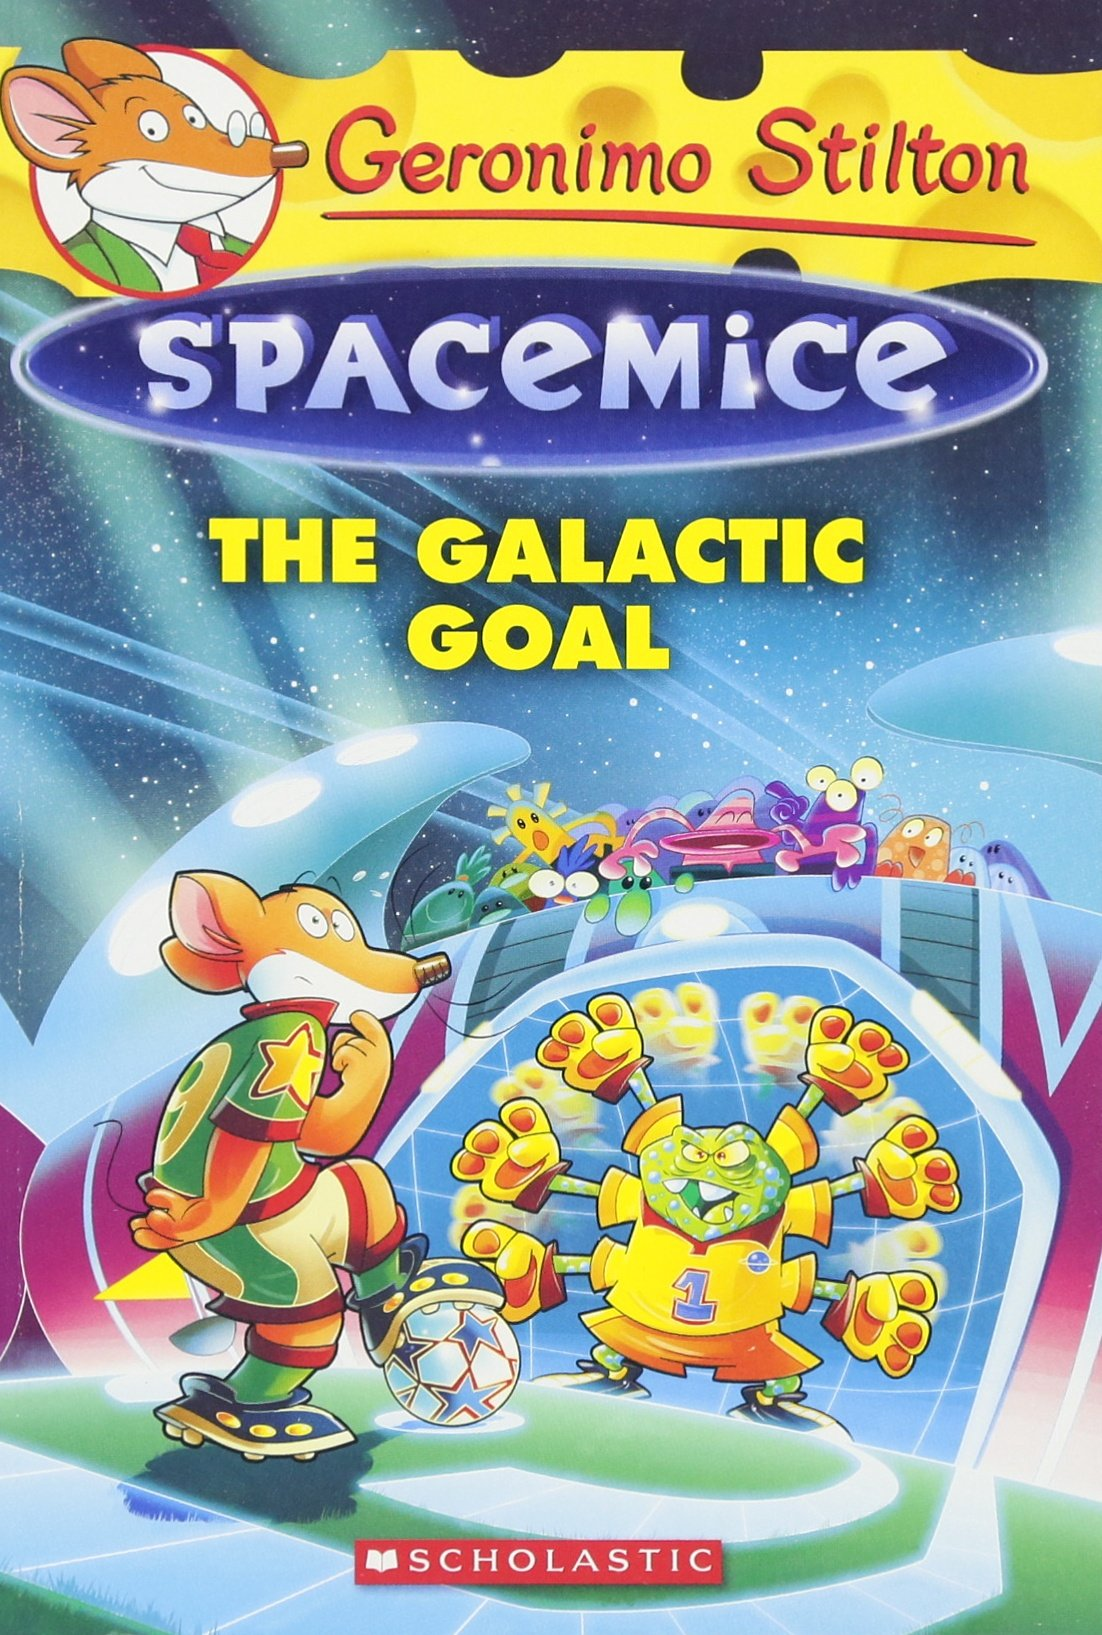 geronimo stilton spacemice 4 the galactic goal geronimo stilton